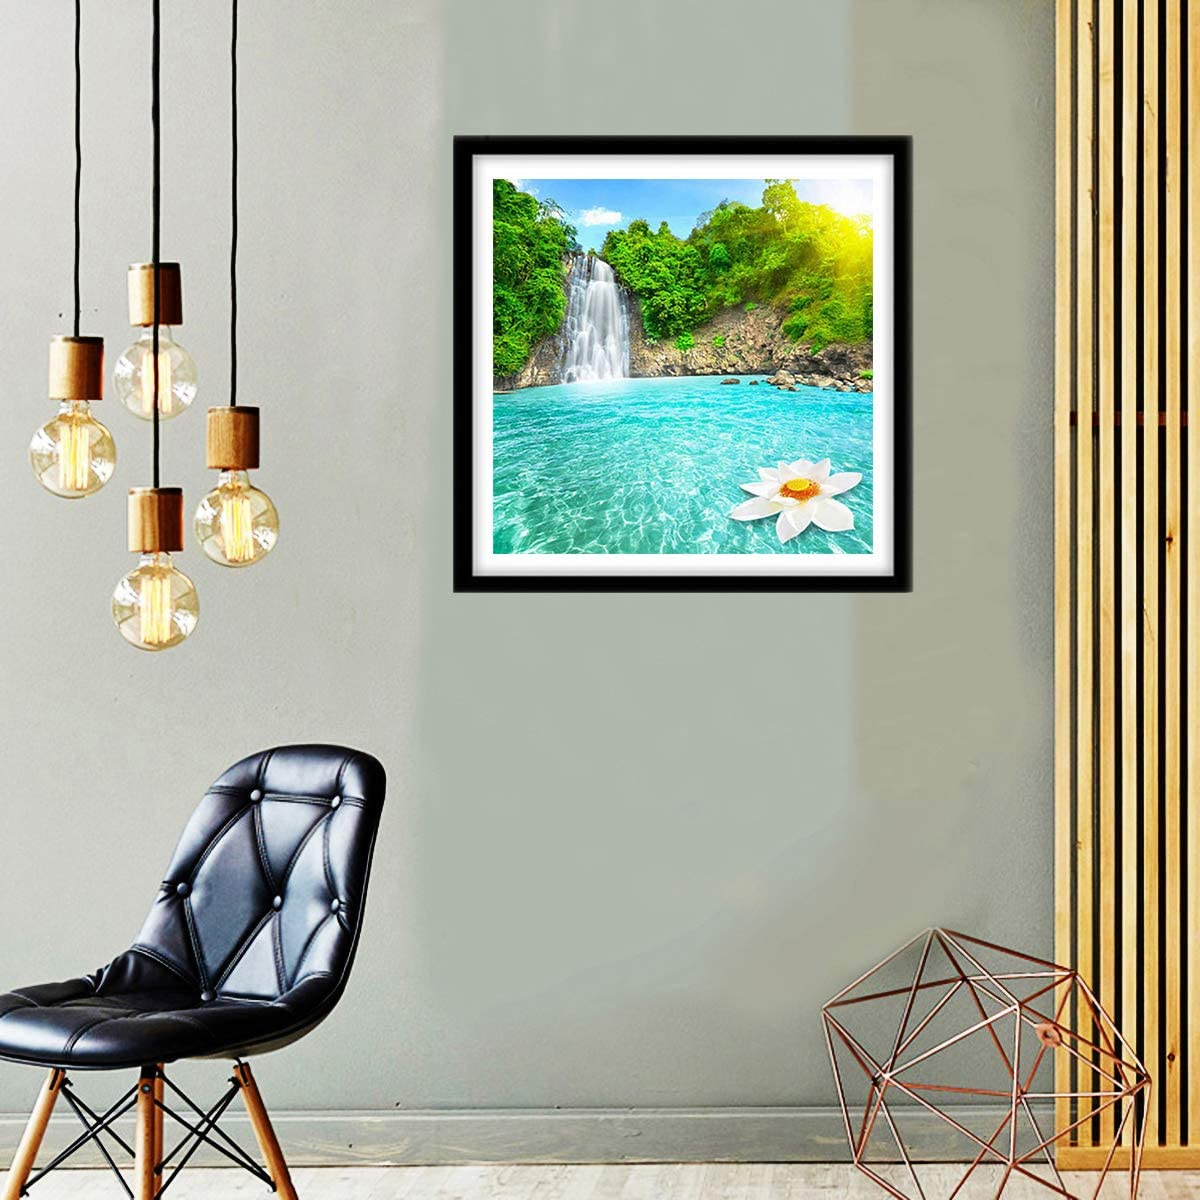 11.8 x 11.8 Inches Without Frame 5D DIY Diamond Painting Kit Full Drill Crystal Embroidery Painting Cross Stitch Arts Crafts for Home Wall Decor